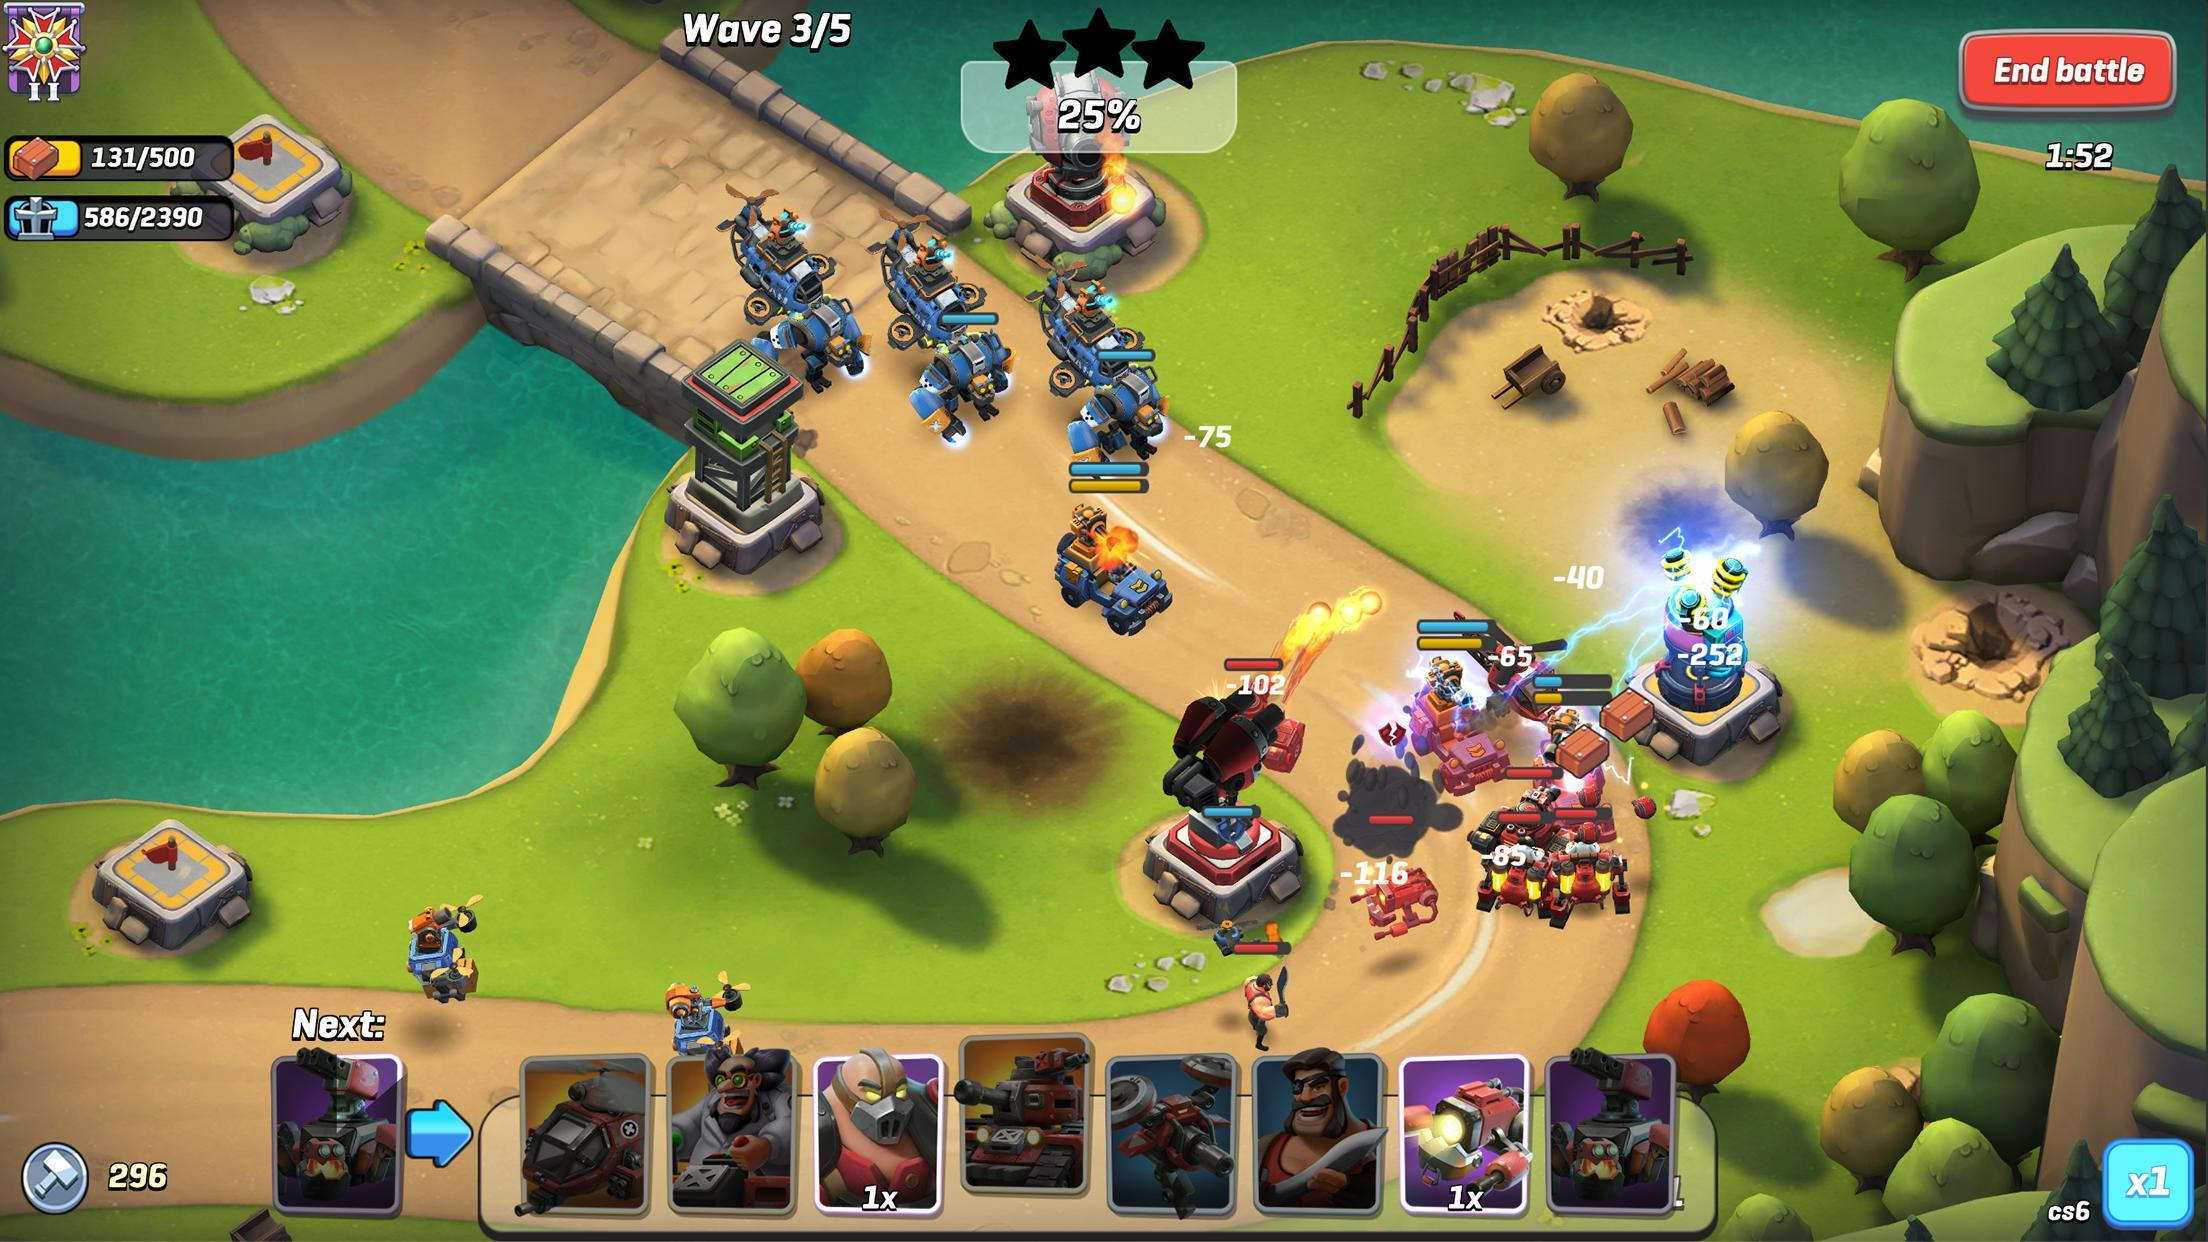 Boom Battlefield for Android - APK Download